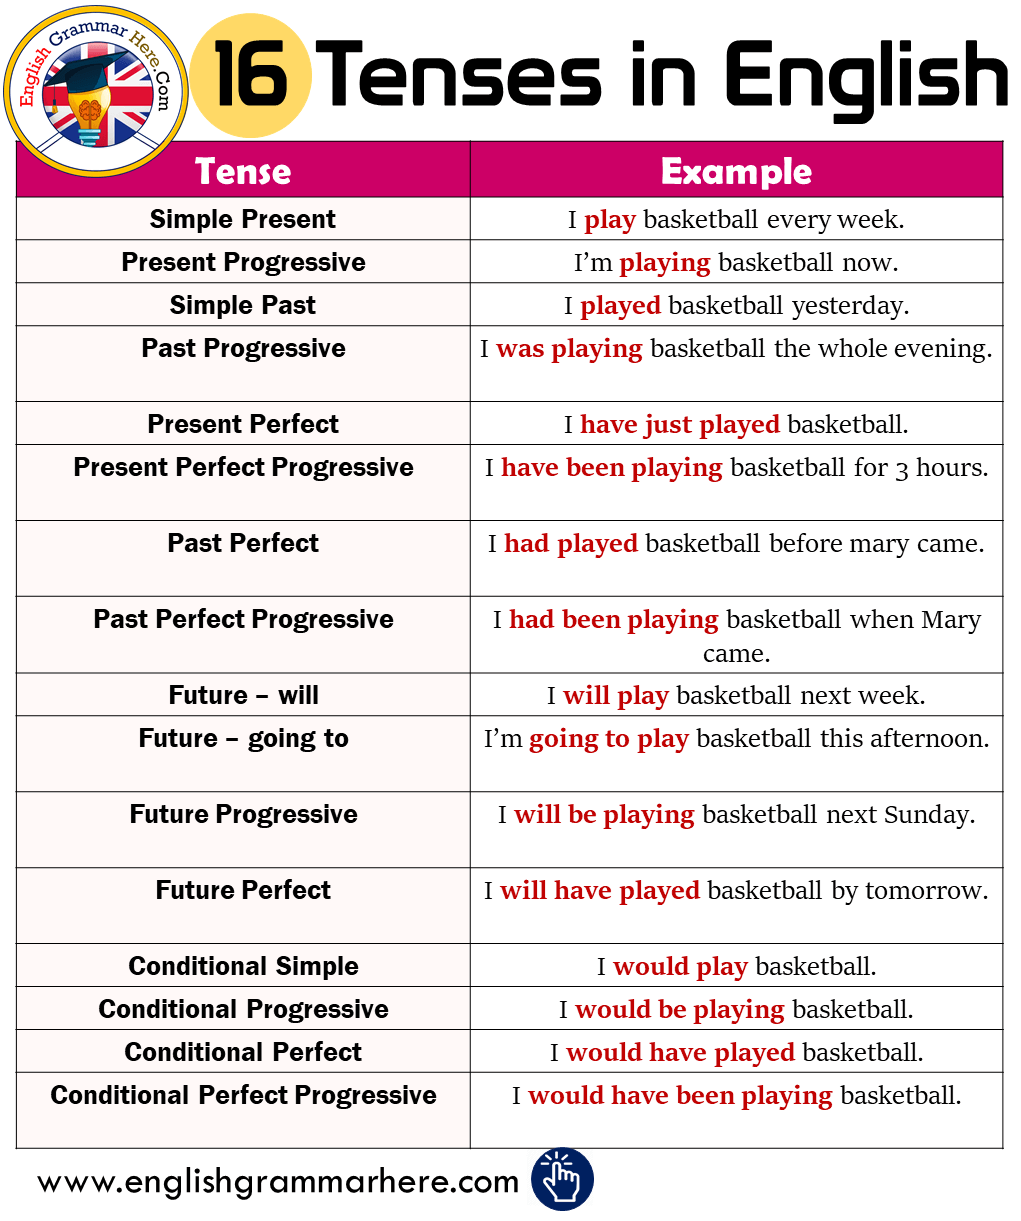 "16 Tenses and Example Sentences in English - 英文翻译中""现在简单式""的使用时机 (3)"